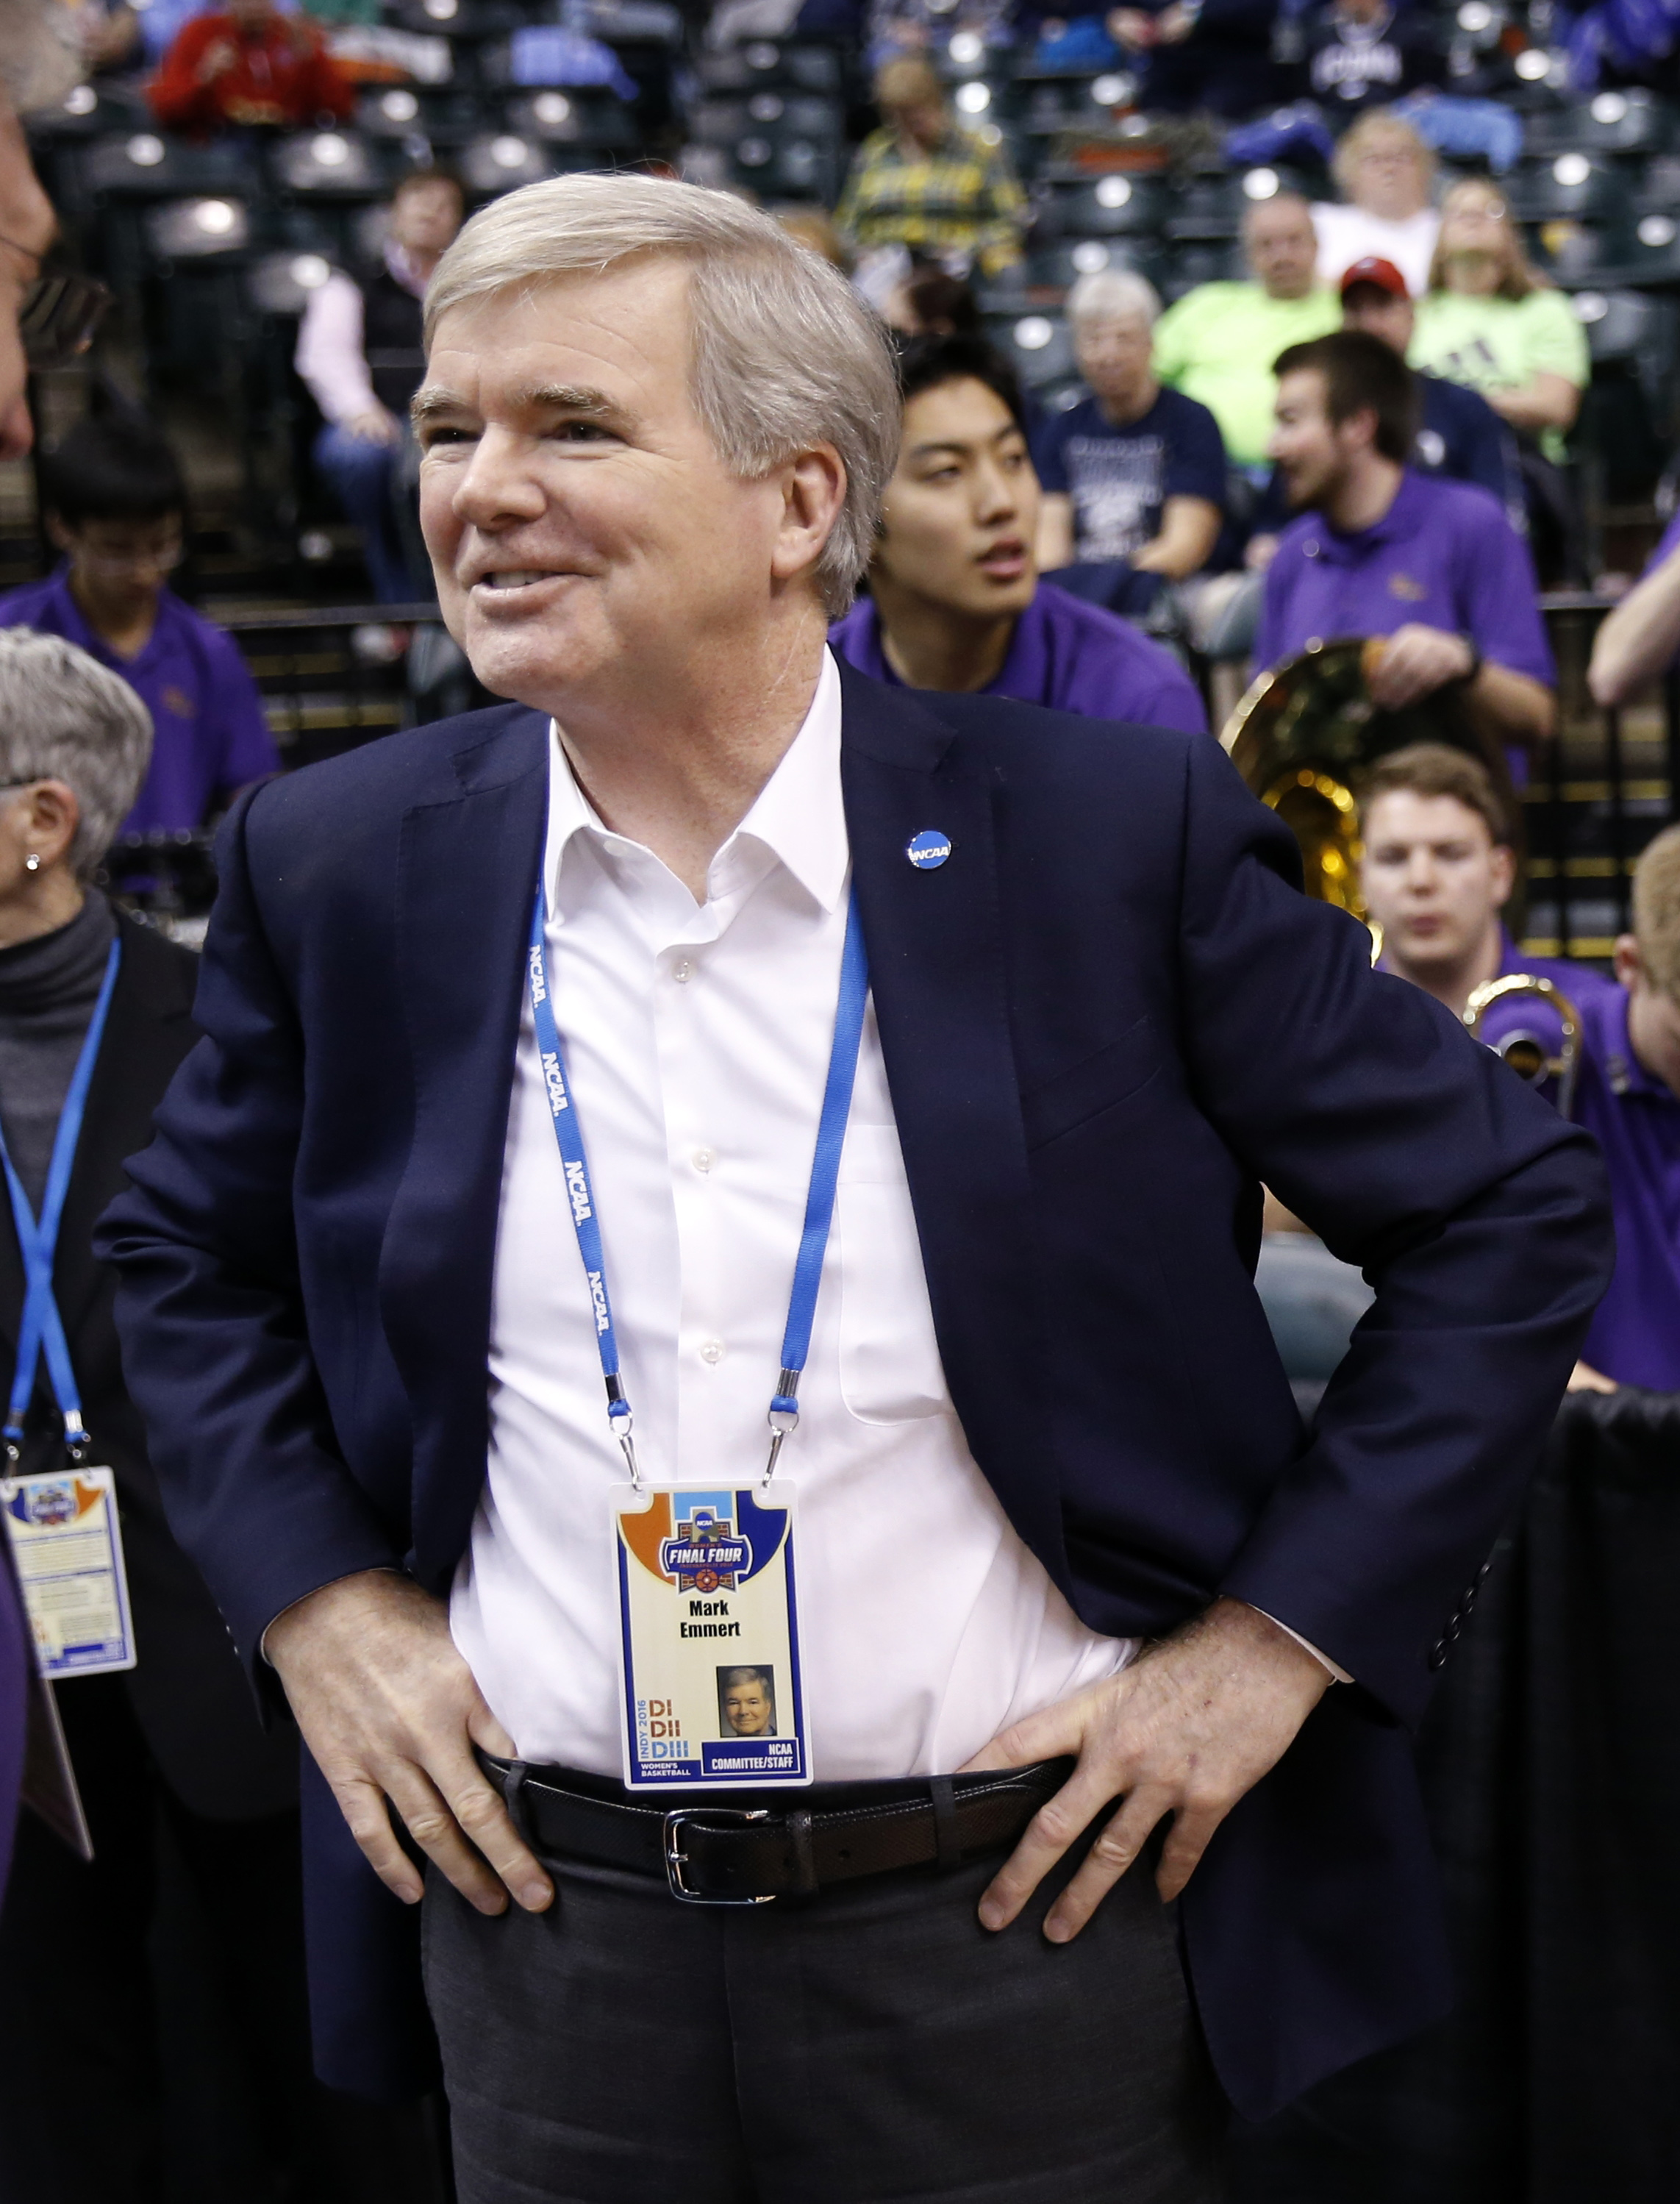 NCAA President Mark Emmert waits for the start of a national semifinal game between Syracuse and Washington, at the women's Final Four in the NCAA college basketball tournament Sunday, April 3, 2016, in Indianapolis. (AP Photo/AJ Mast)